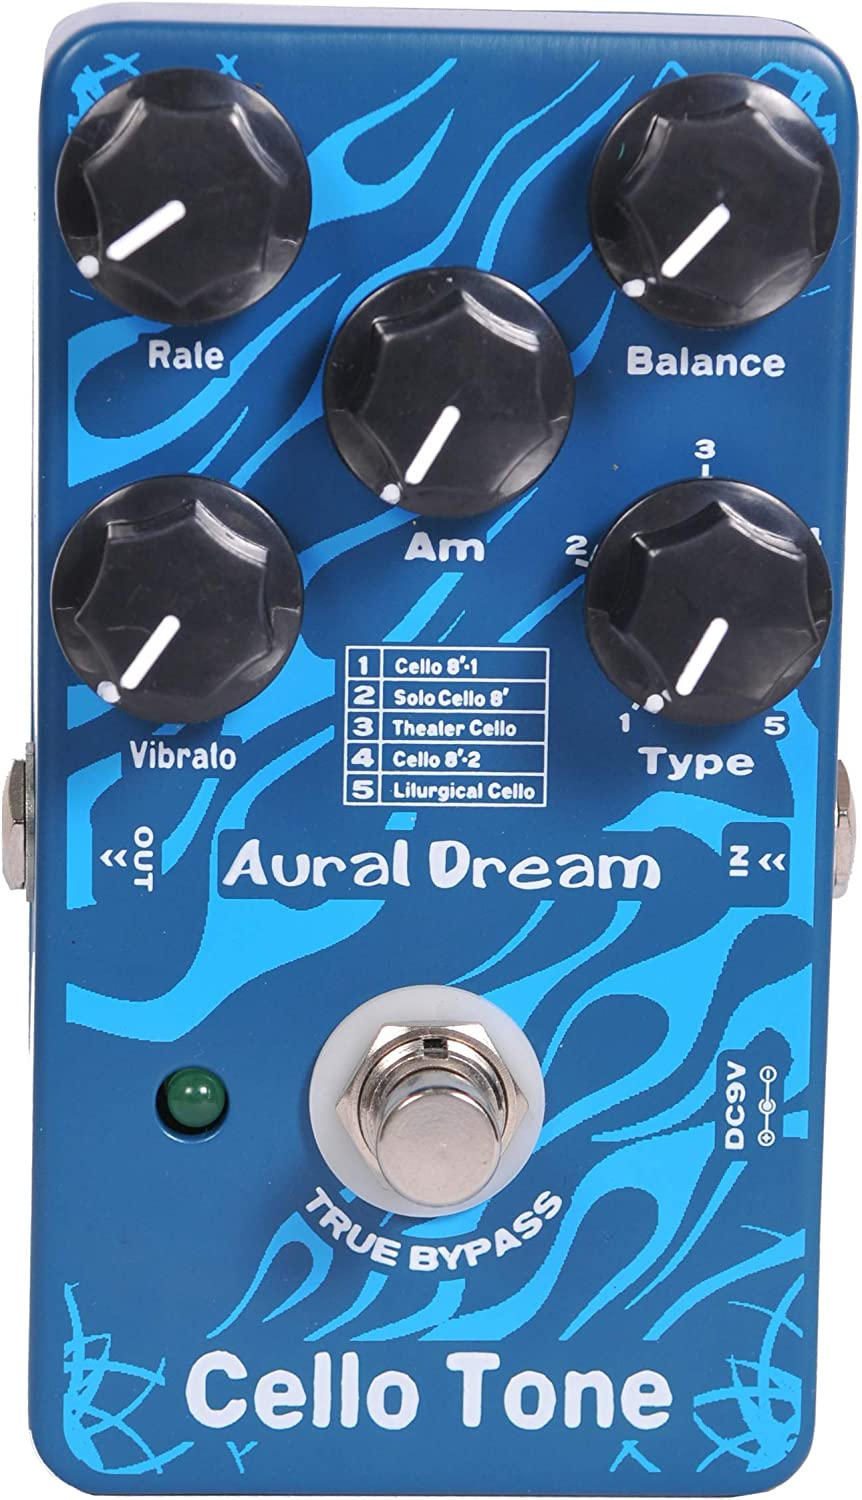 Aural Dream Cello Tone Synthesizer Guitar Effects Pedal based on organ including Cello 8',Theater Cello,Solo Cello 8'and Liturgical Cello with Vibrato and Swell module